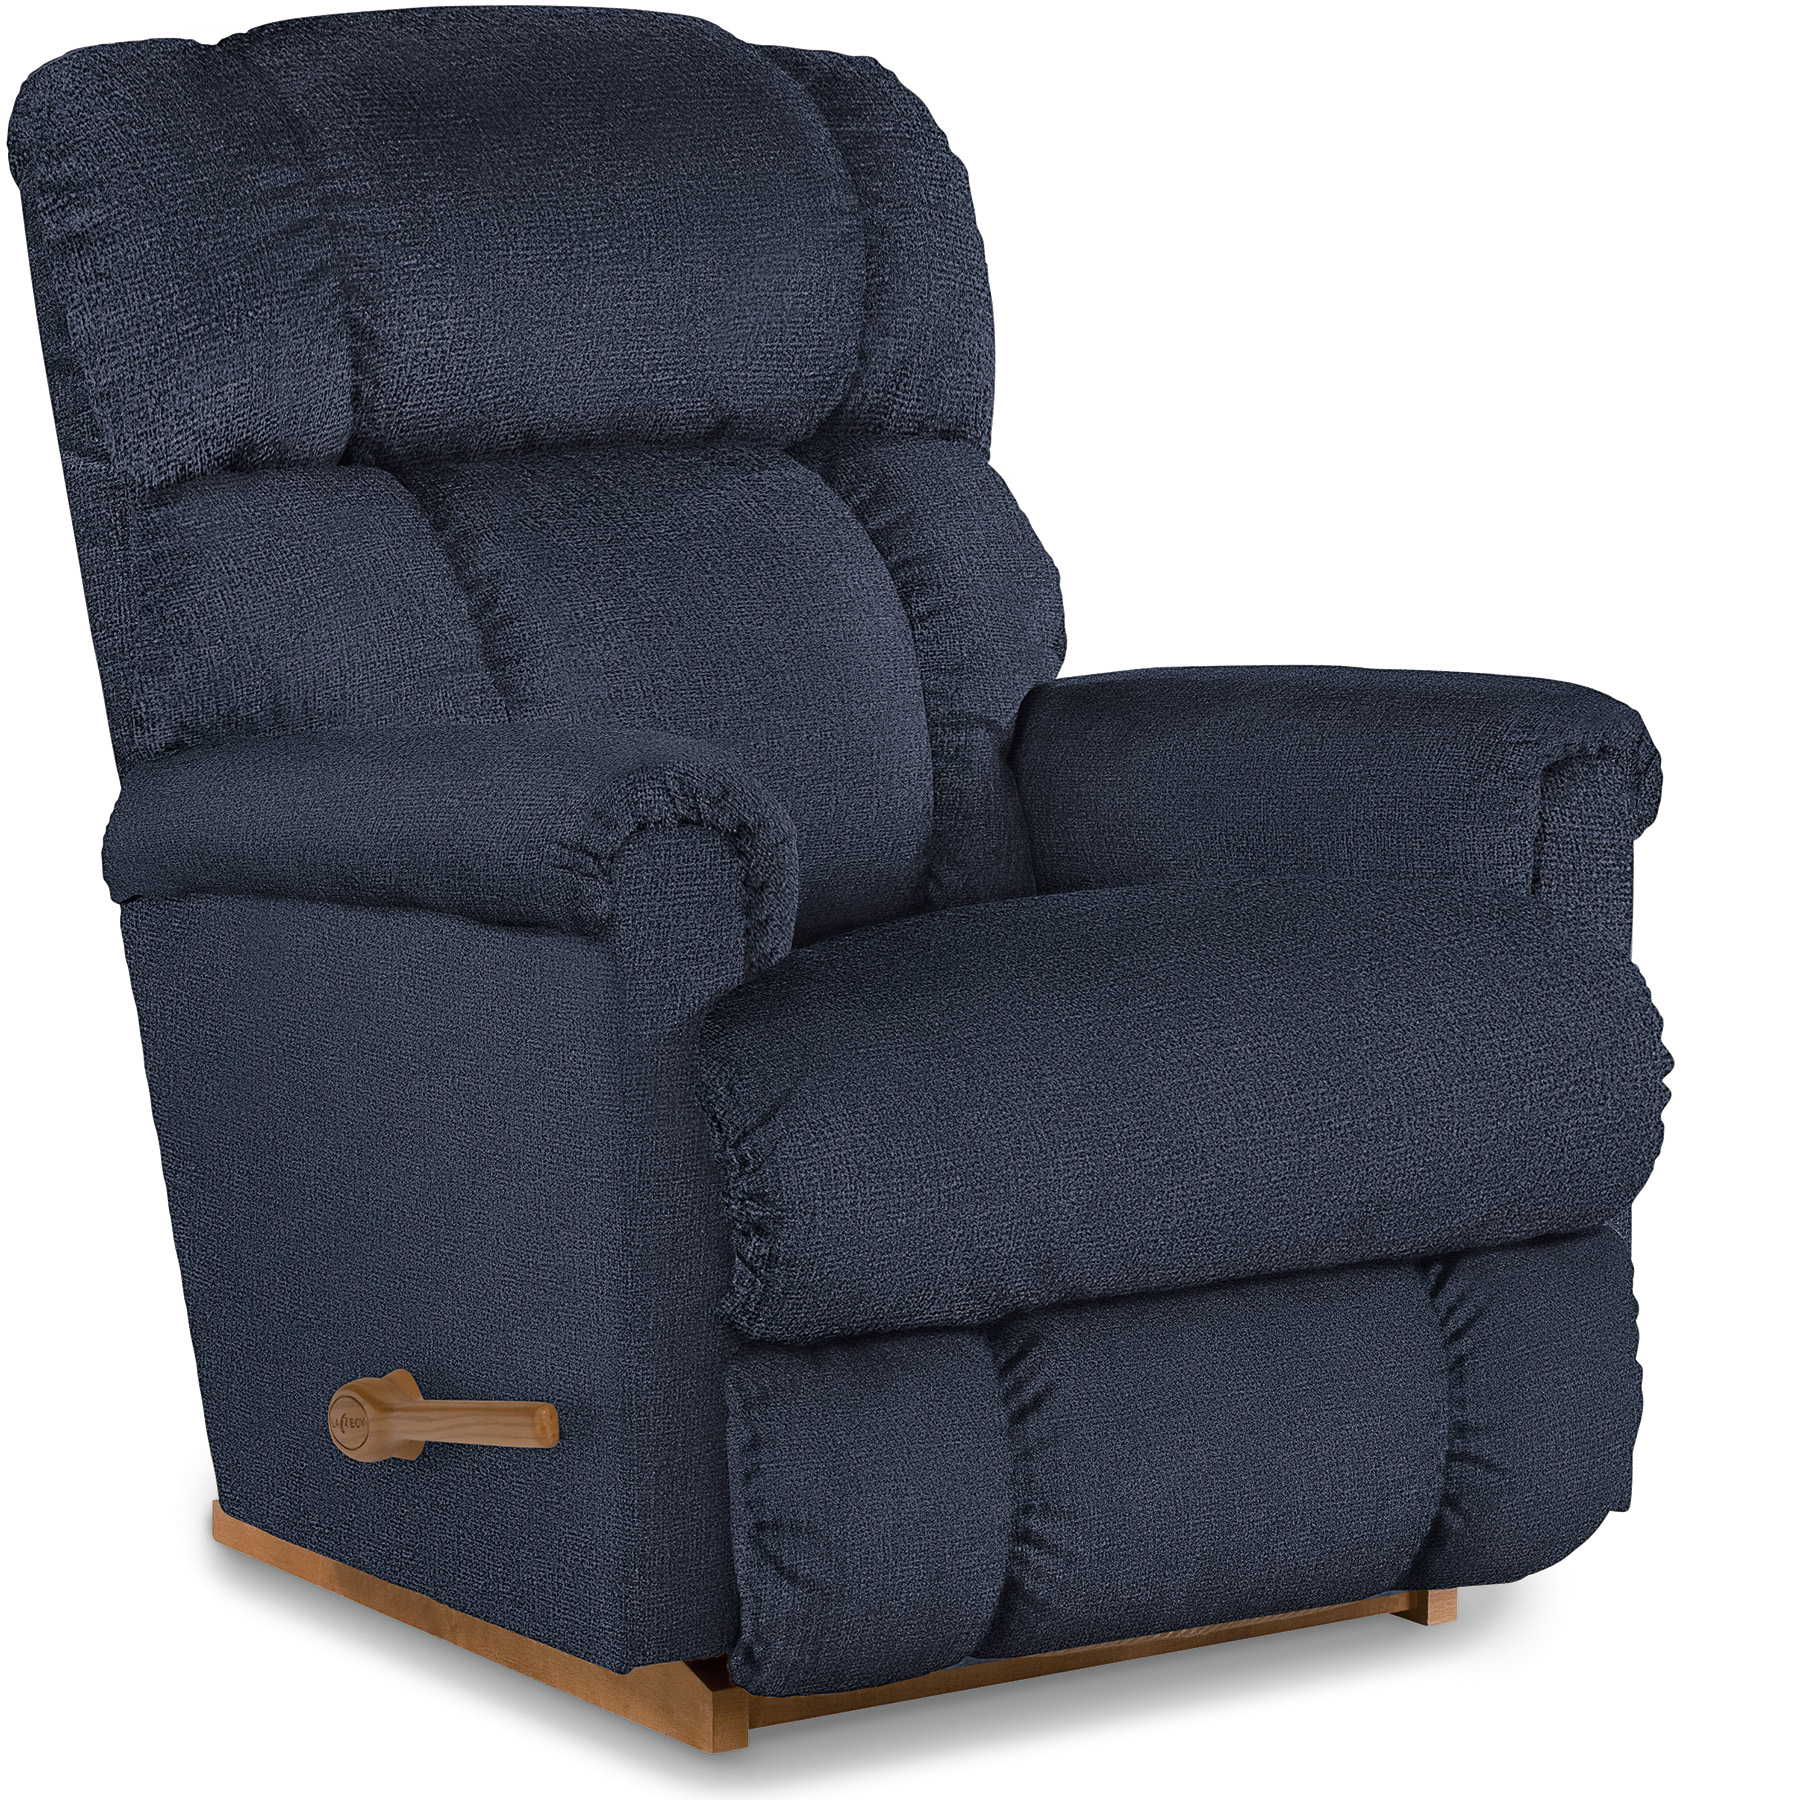 Navy Rocking Chair La Z Boy Pinnacle Rocker Recliner Navy